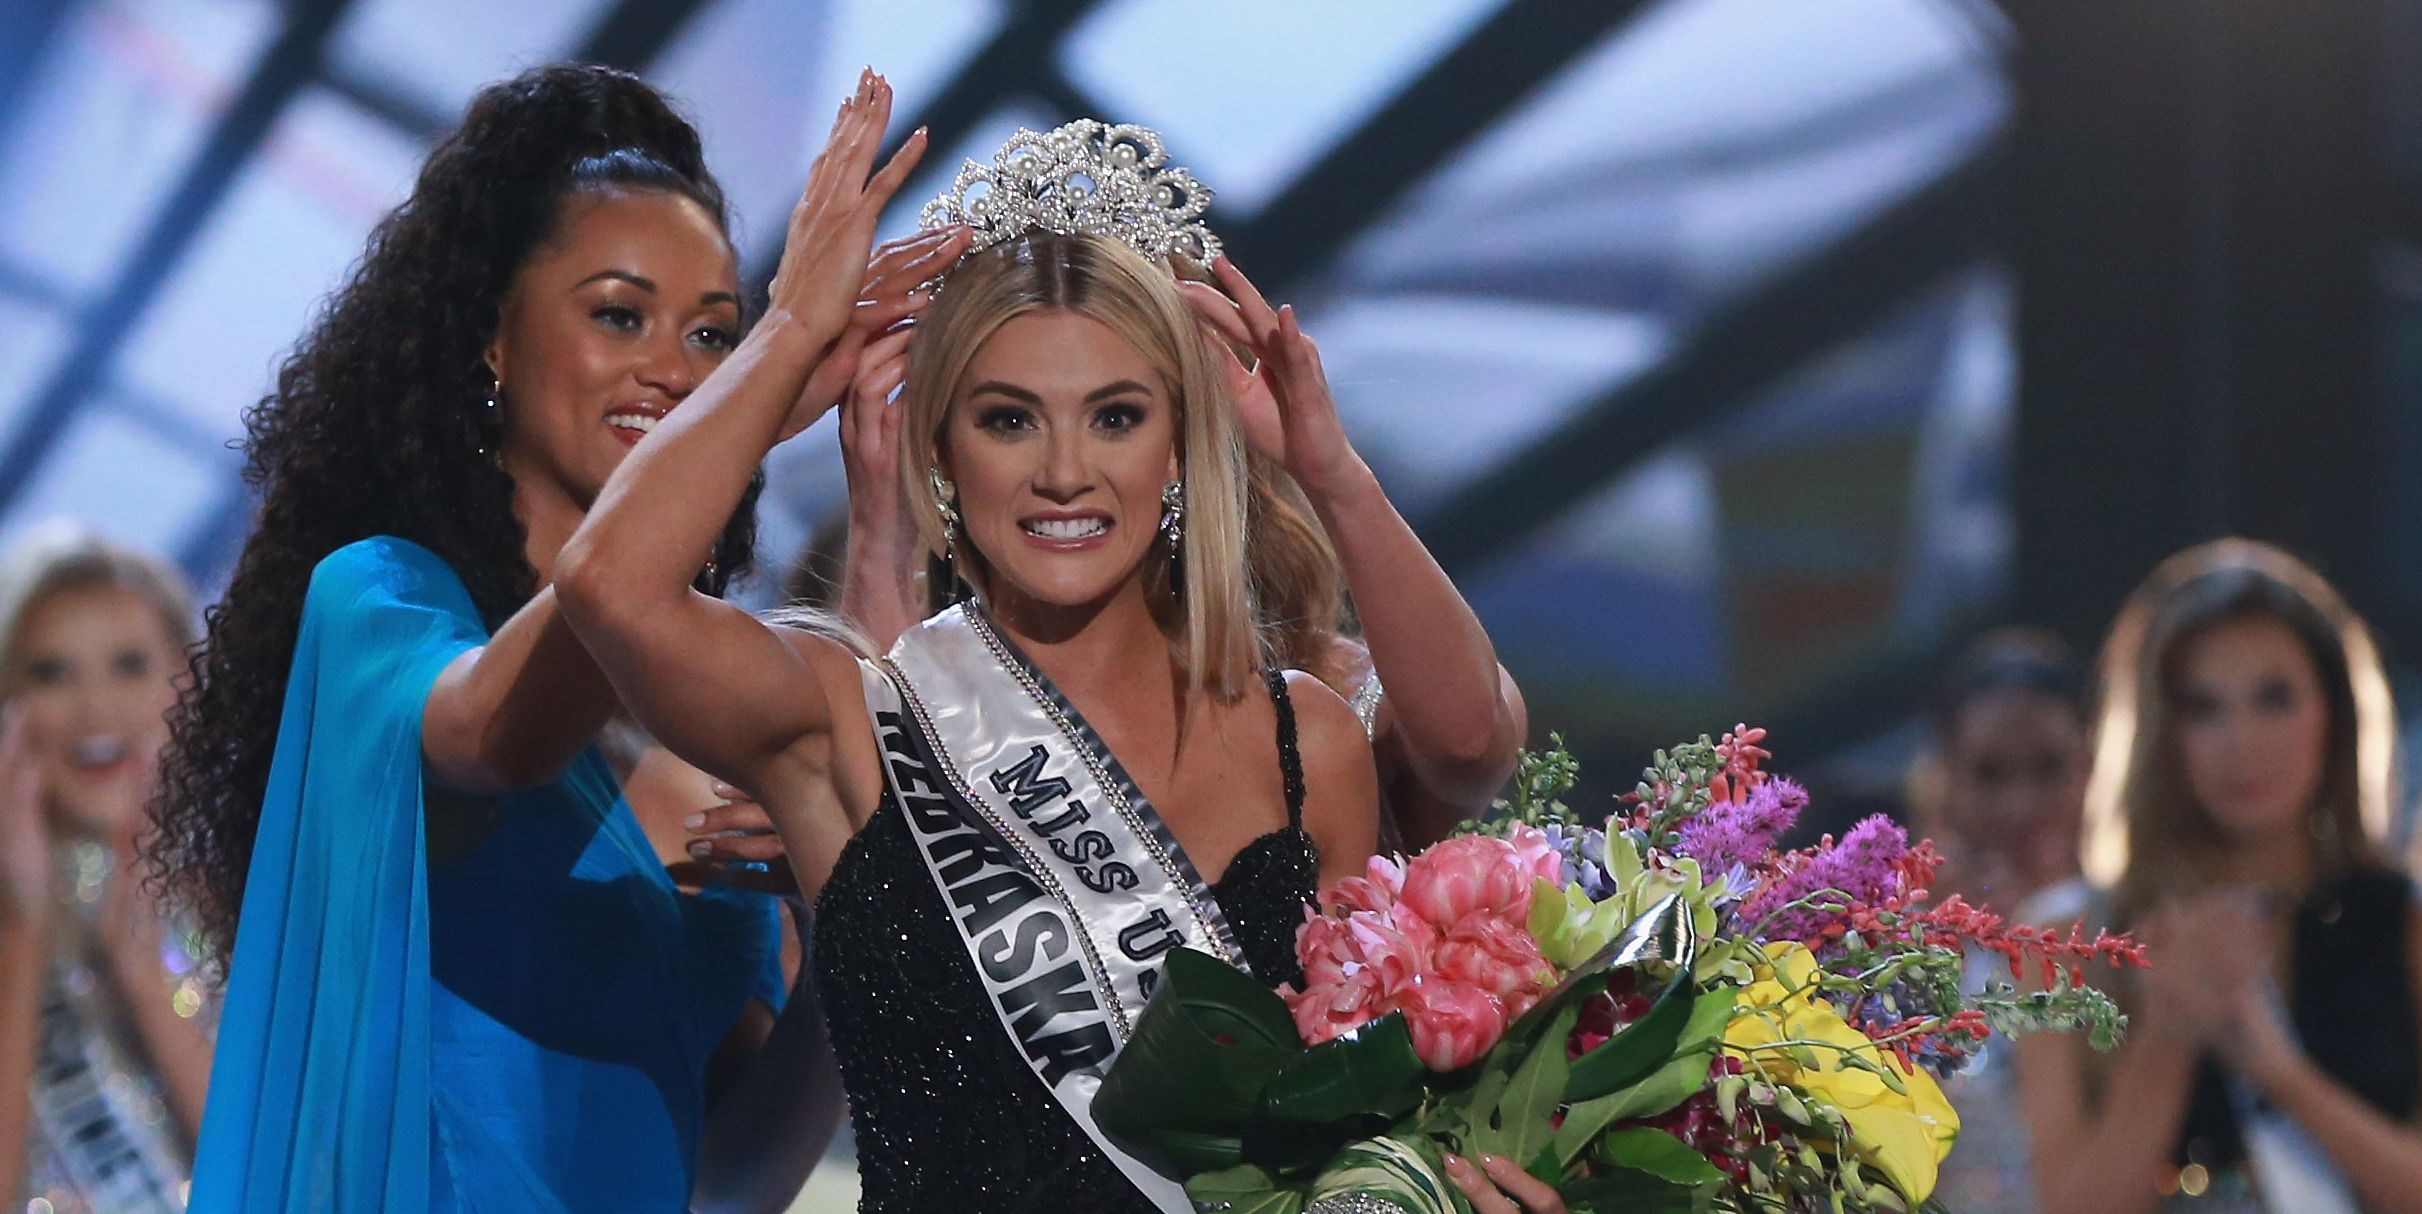 The Internet Is Pissed at Miss USA for Mocking Miss Vietnam in This Racist Video